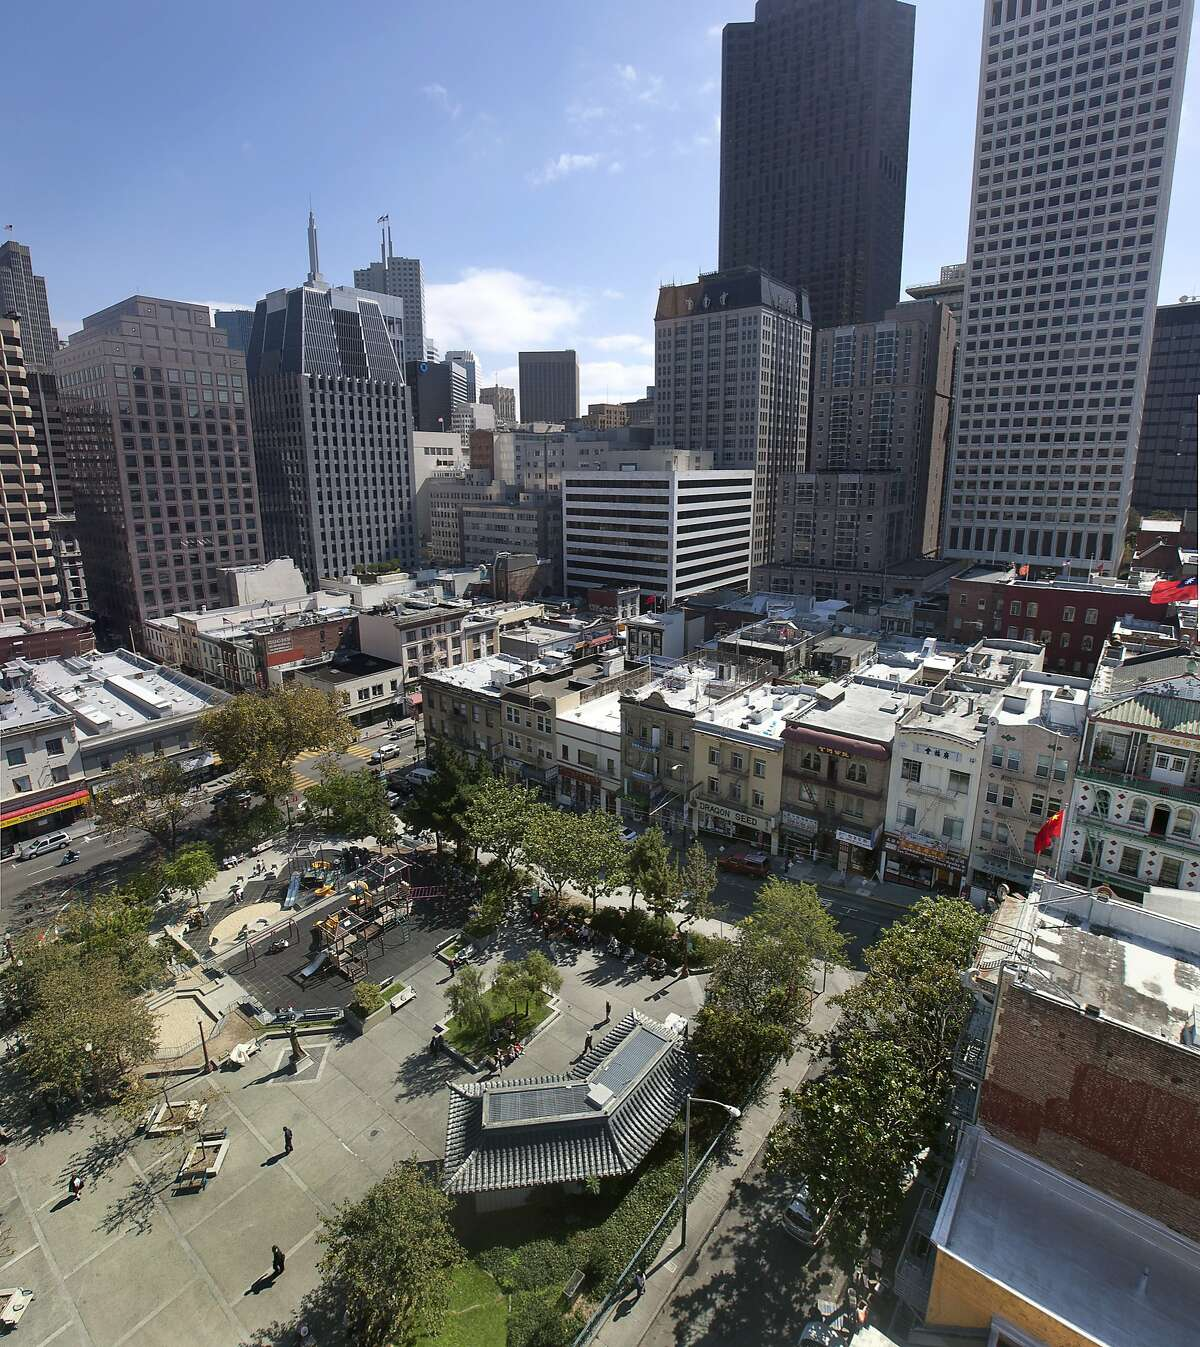 A stitiched image of residents of San Francisco enjoy the sunshine in Portsmouth Square, a popular park in Chinatown in San Francisco, Calif. on Friday, Sept. 30, 2011. The proposed Transbay development project will cast it's shadow across the Square.